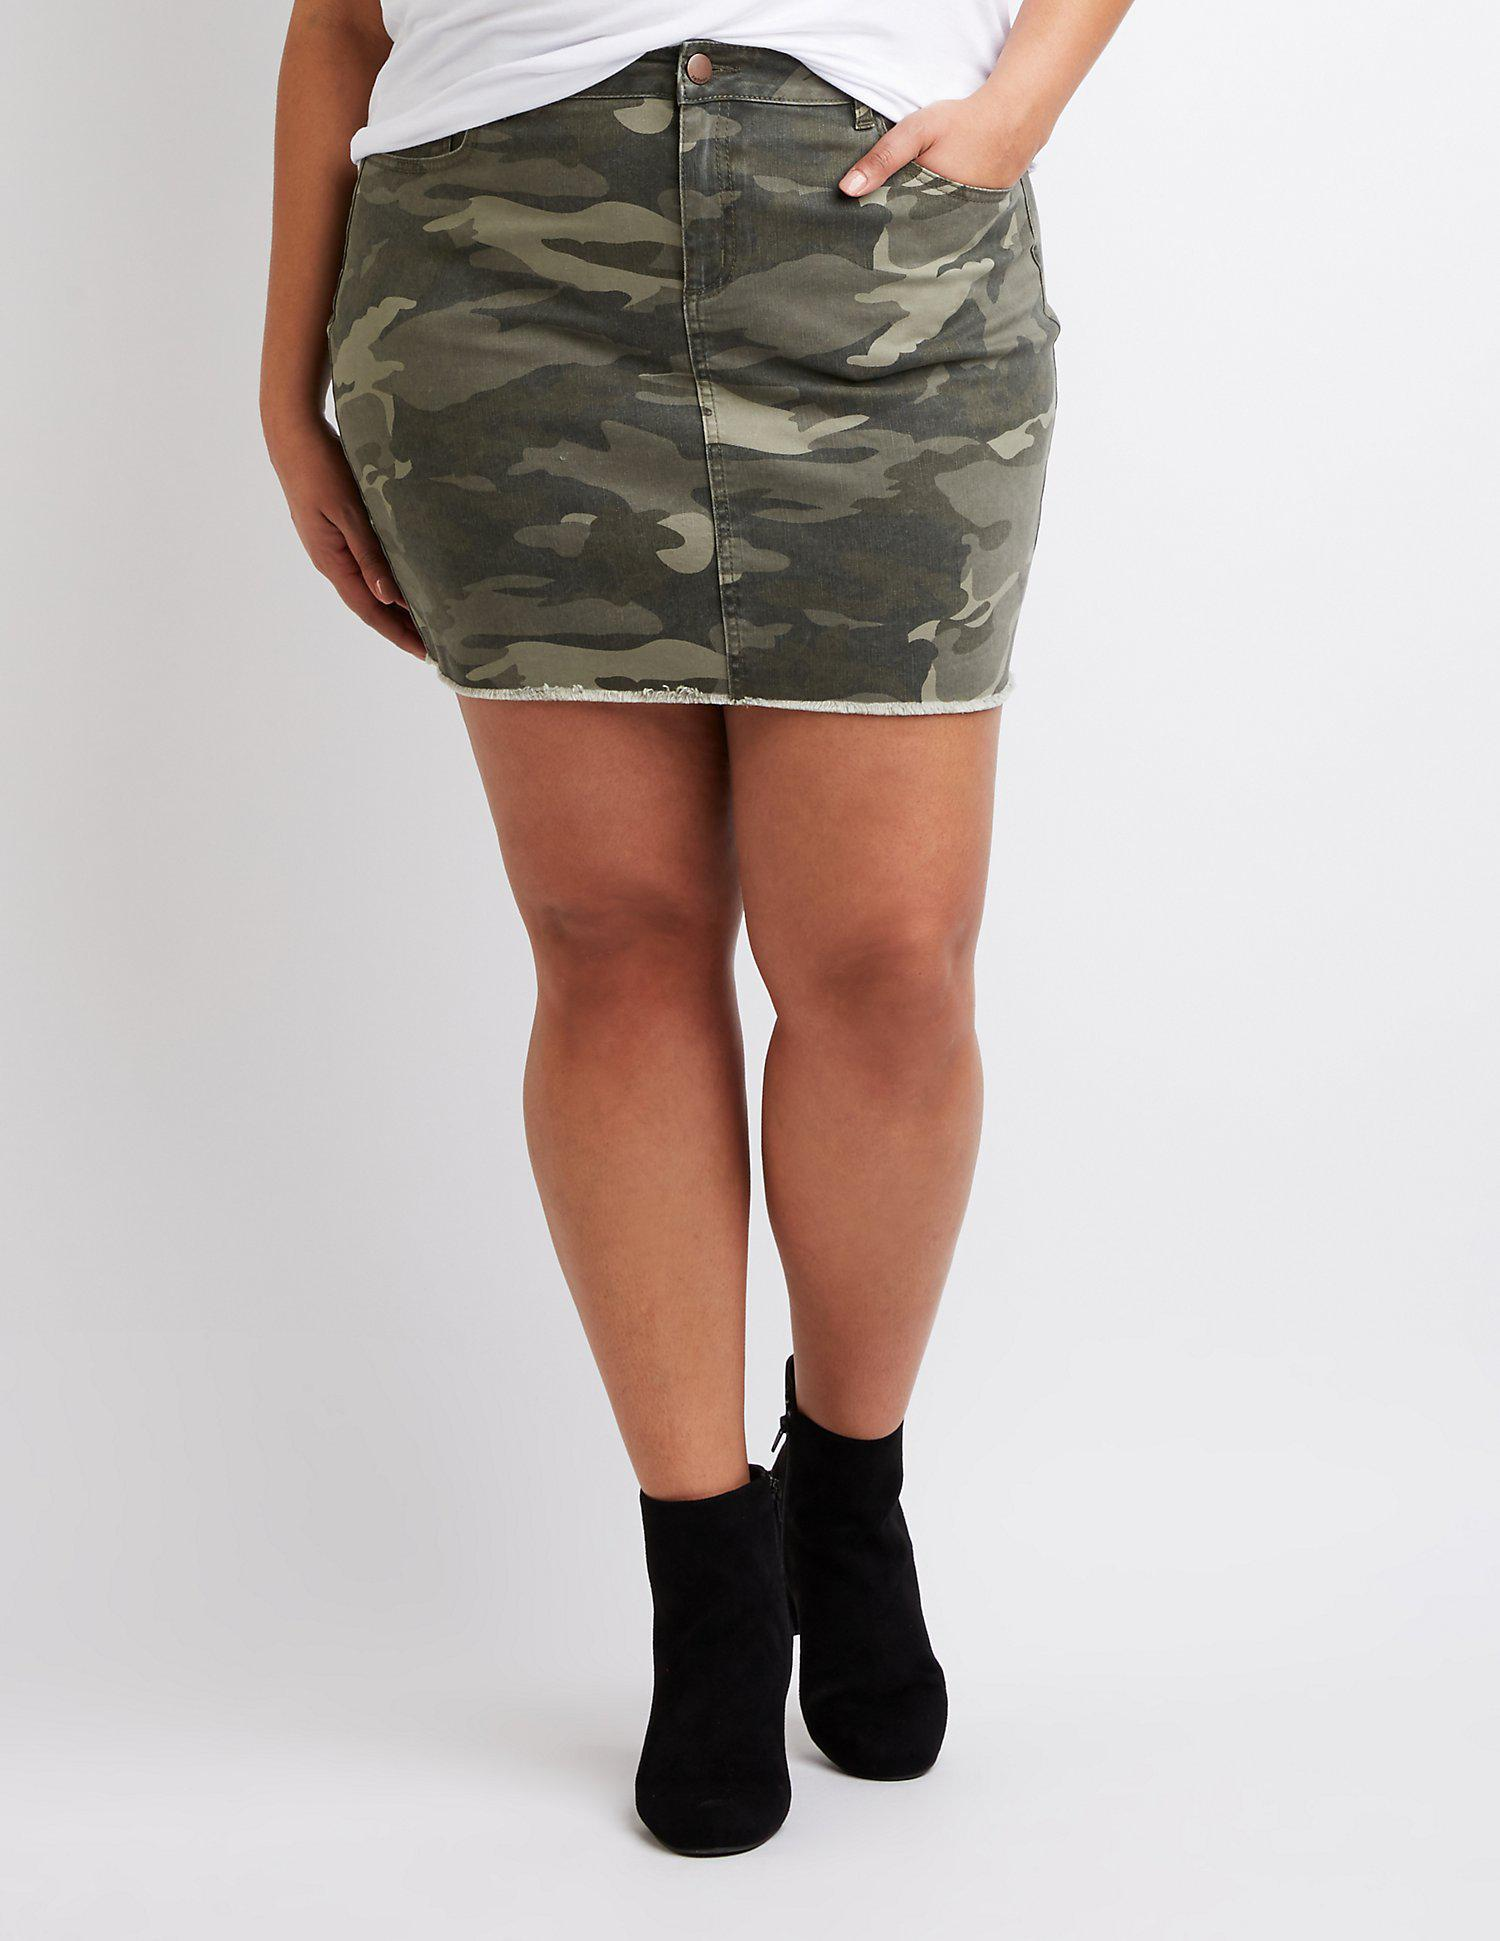 c44366a59 Gallery. Previously sold at: Charlotte Russe · Women's Button Down Skirts  ...